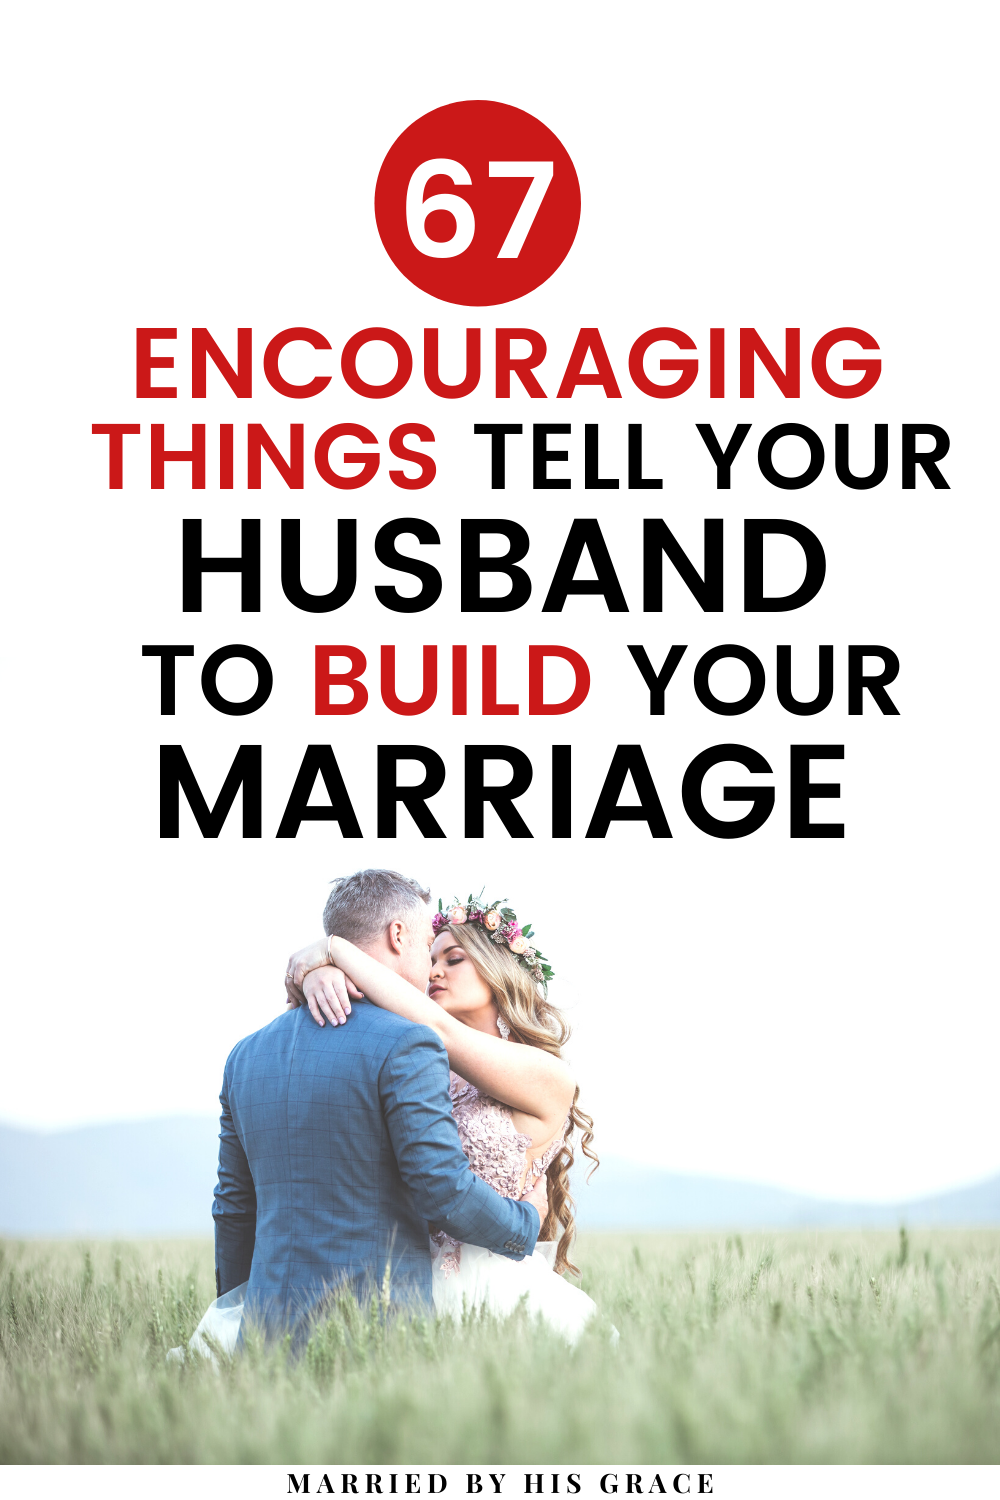 How To Motivate Your Husband To Make More Money